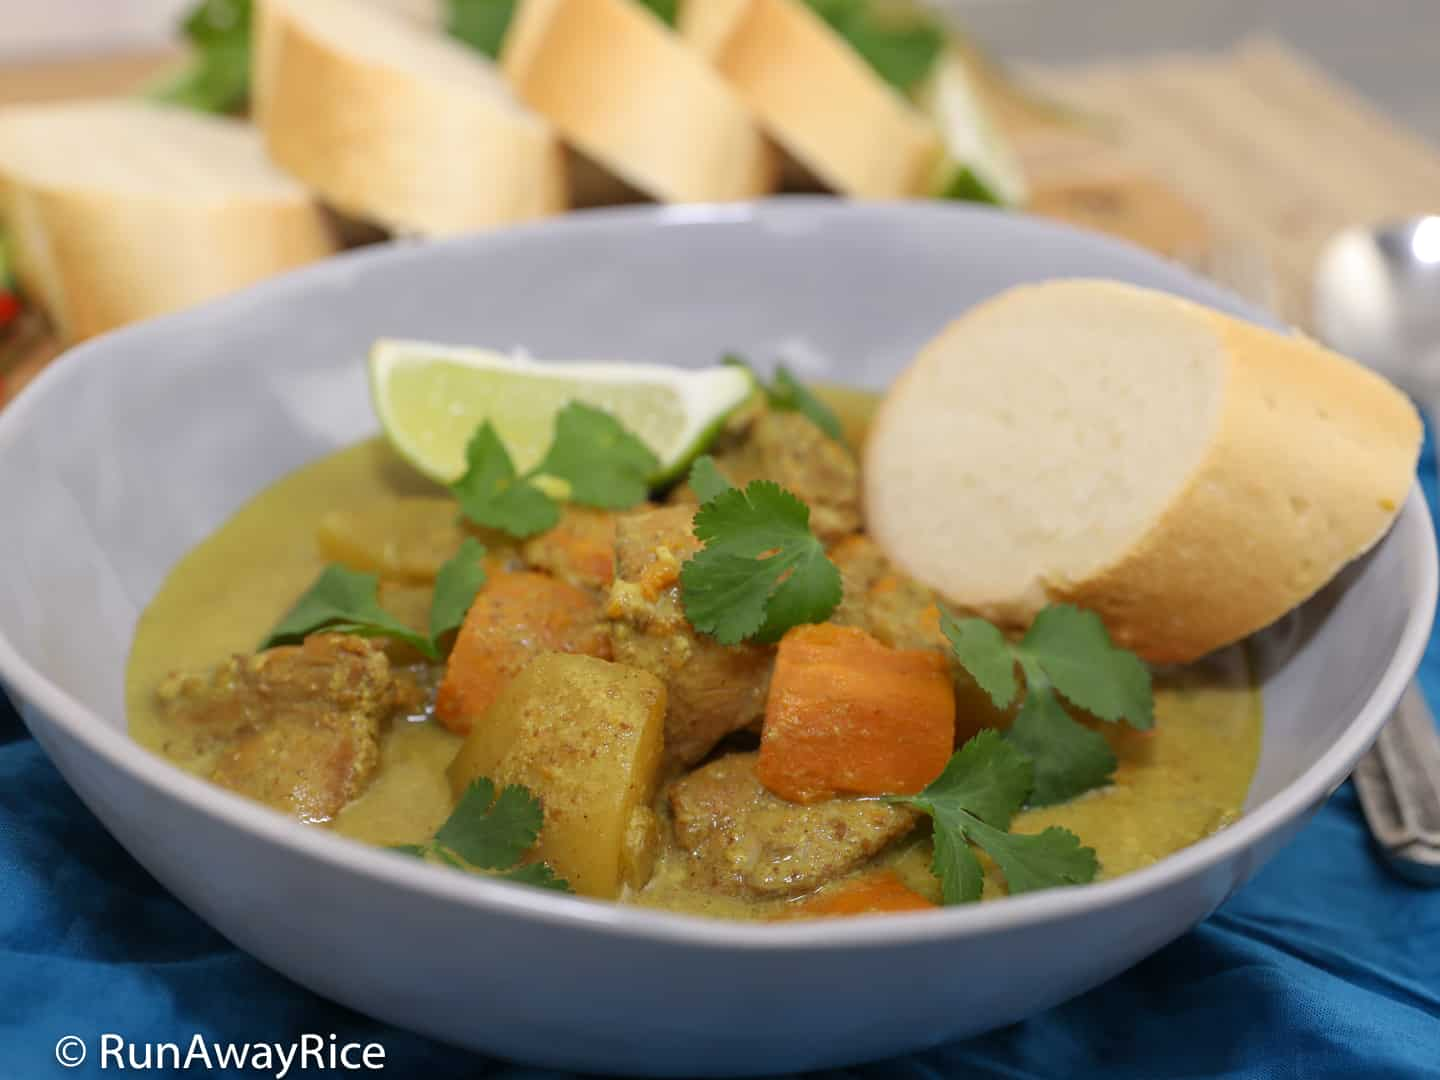 Instant Pot Chicken Curry (Ca Ri Ga) - Yummy Vietnamese-Style Curry Made Easy in the Instant Pot | recipe from runawayrice.com